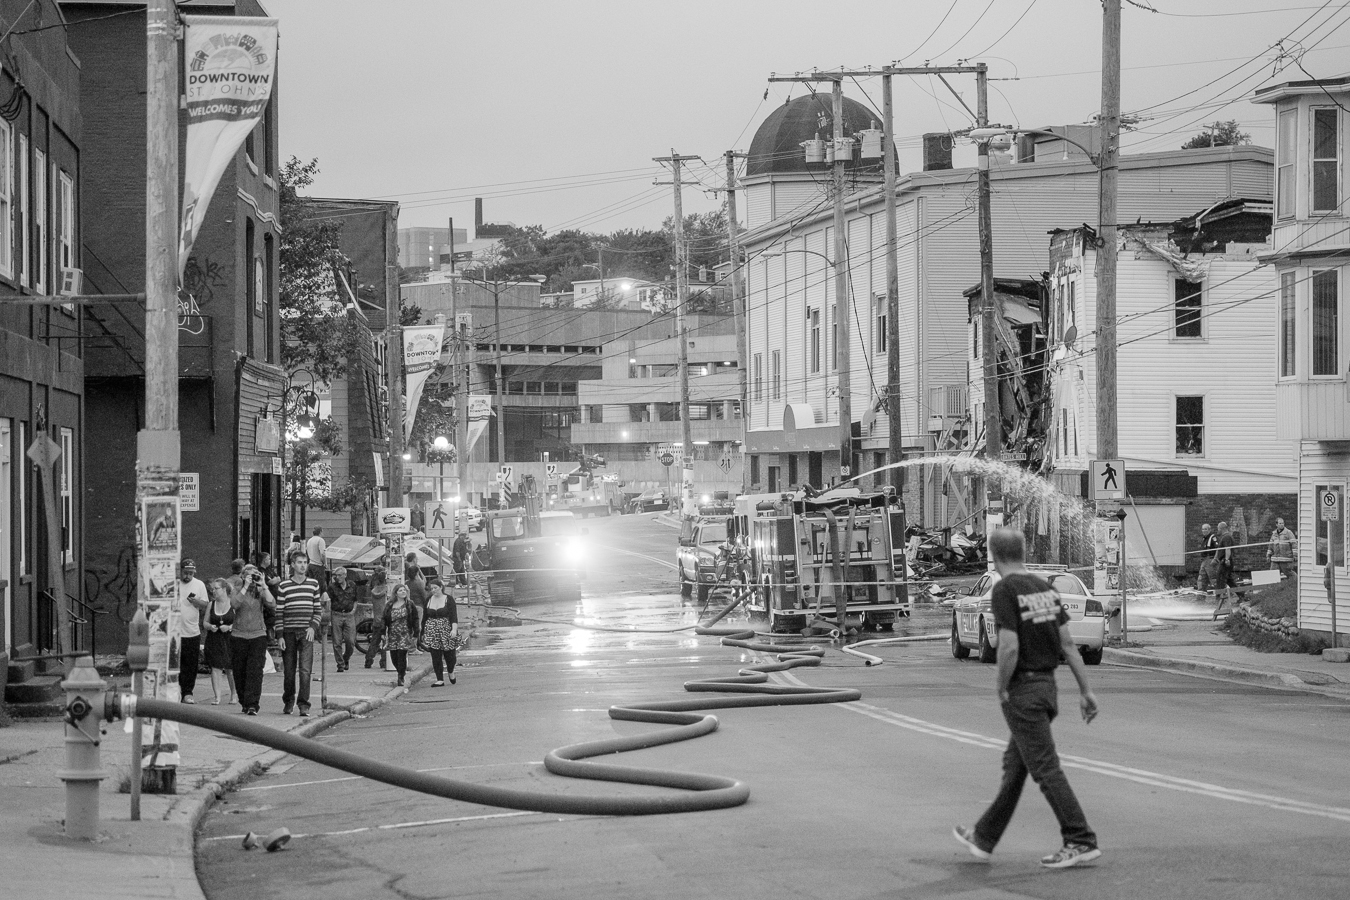 Firefighters and onlookers at the scene of another lost block of Downtown - Sept 2013 - Duckworth Street